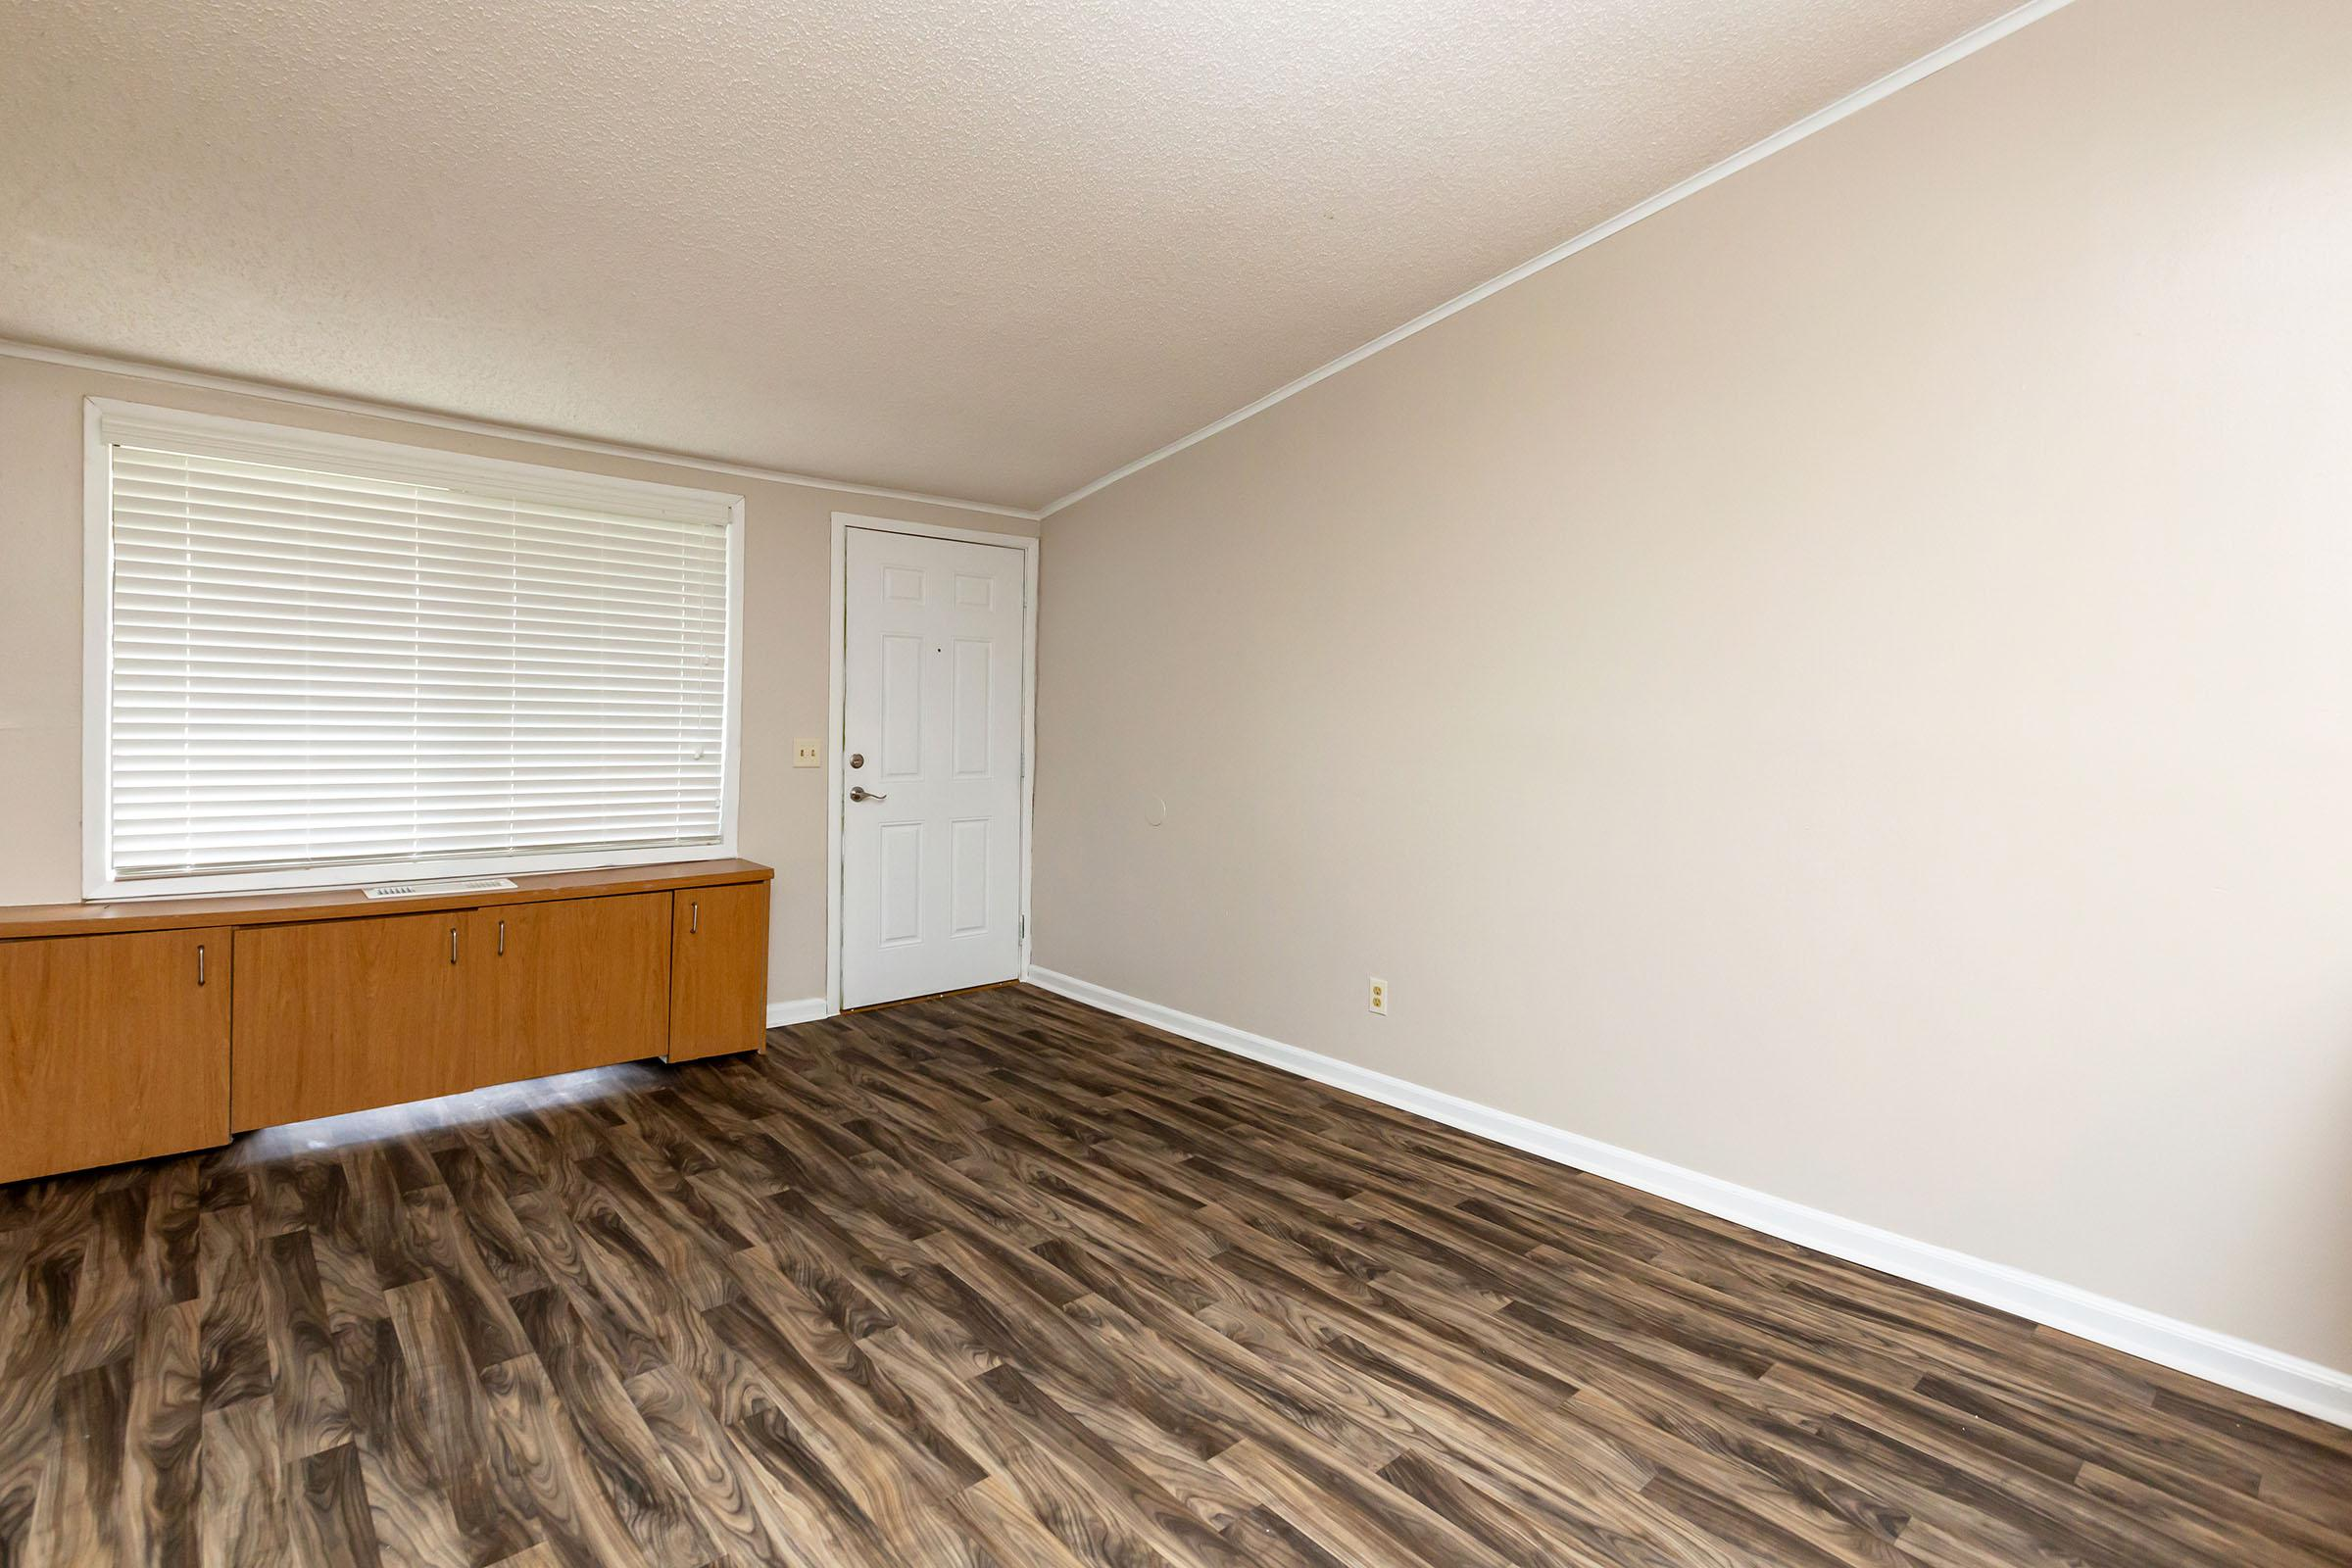 a bedroom with a wooden floor